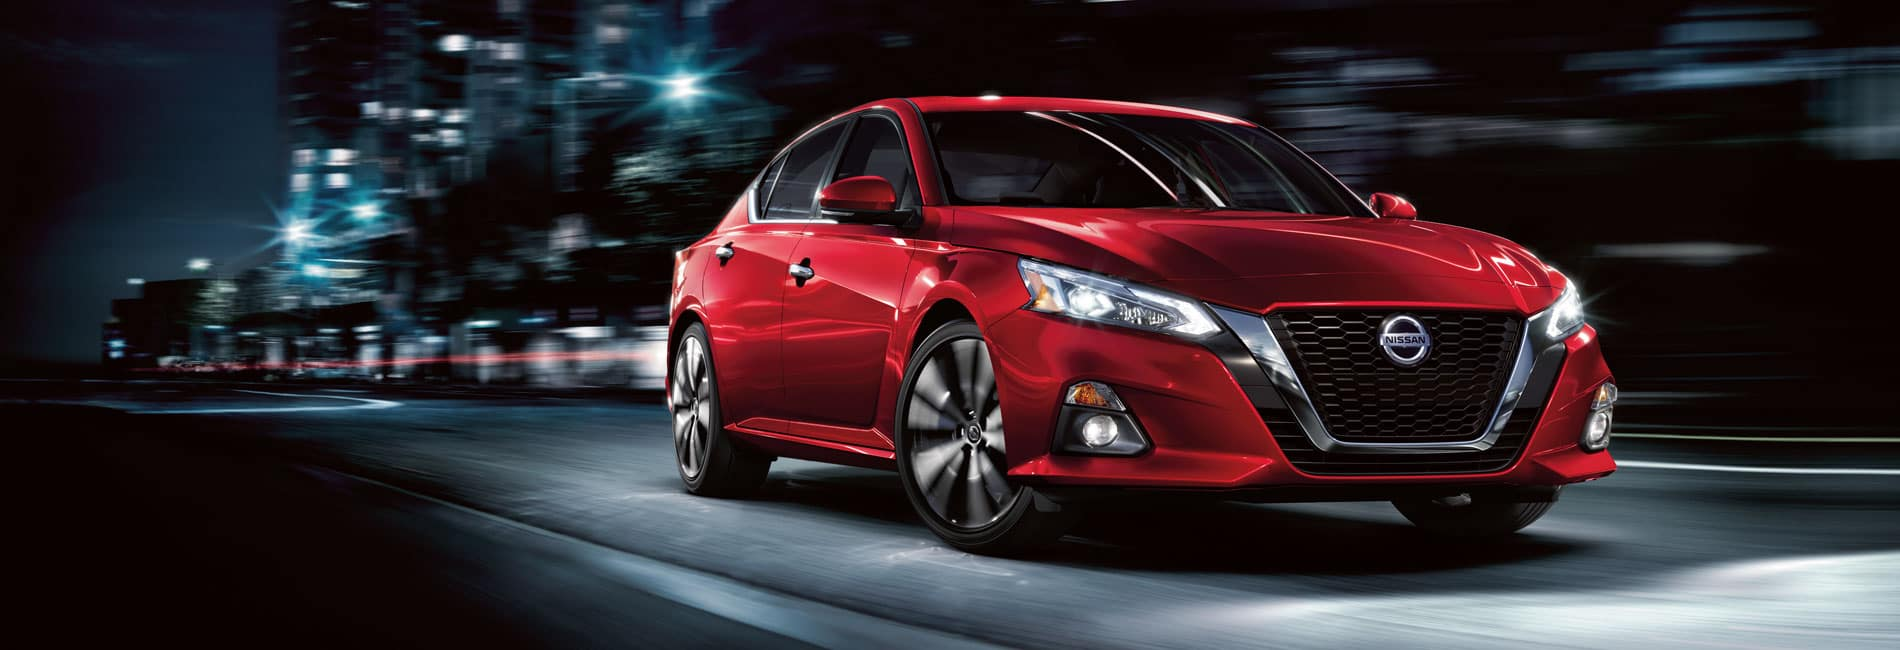 2019 Nissan Altima Trims at Star Nissan